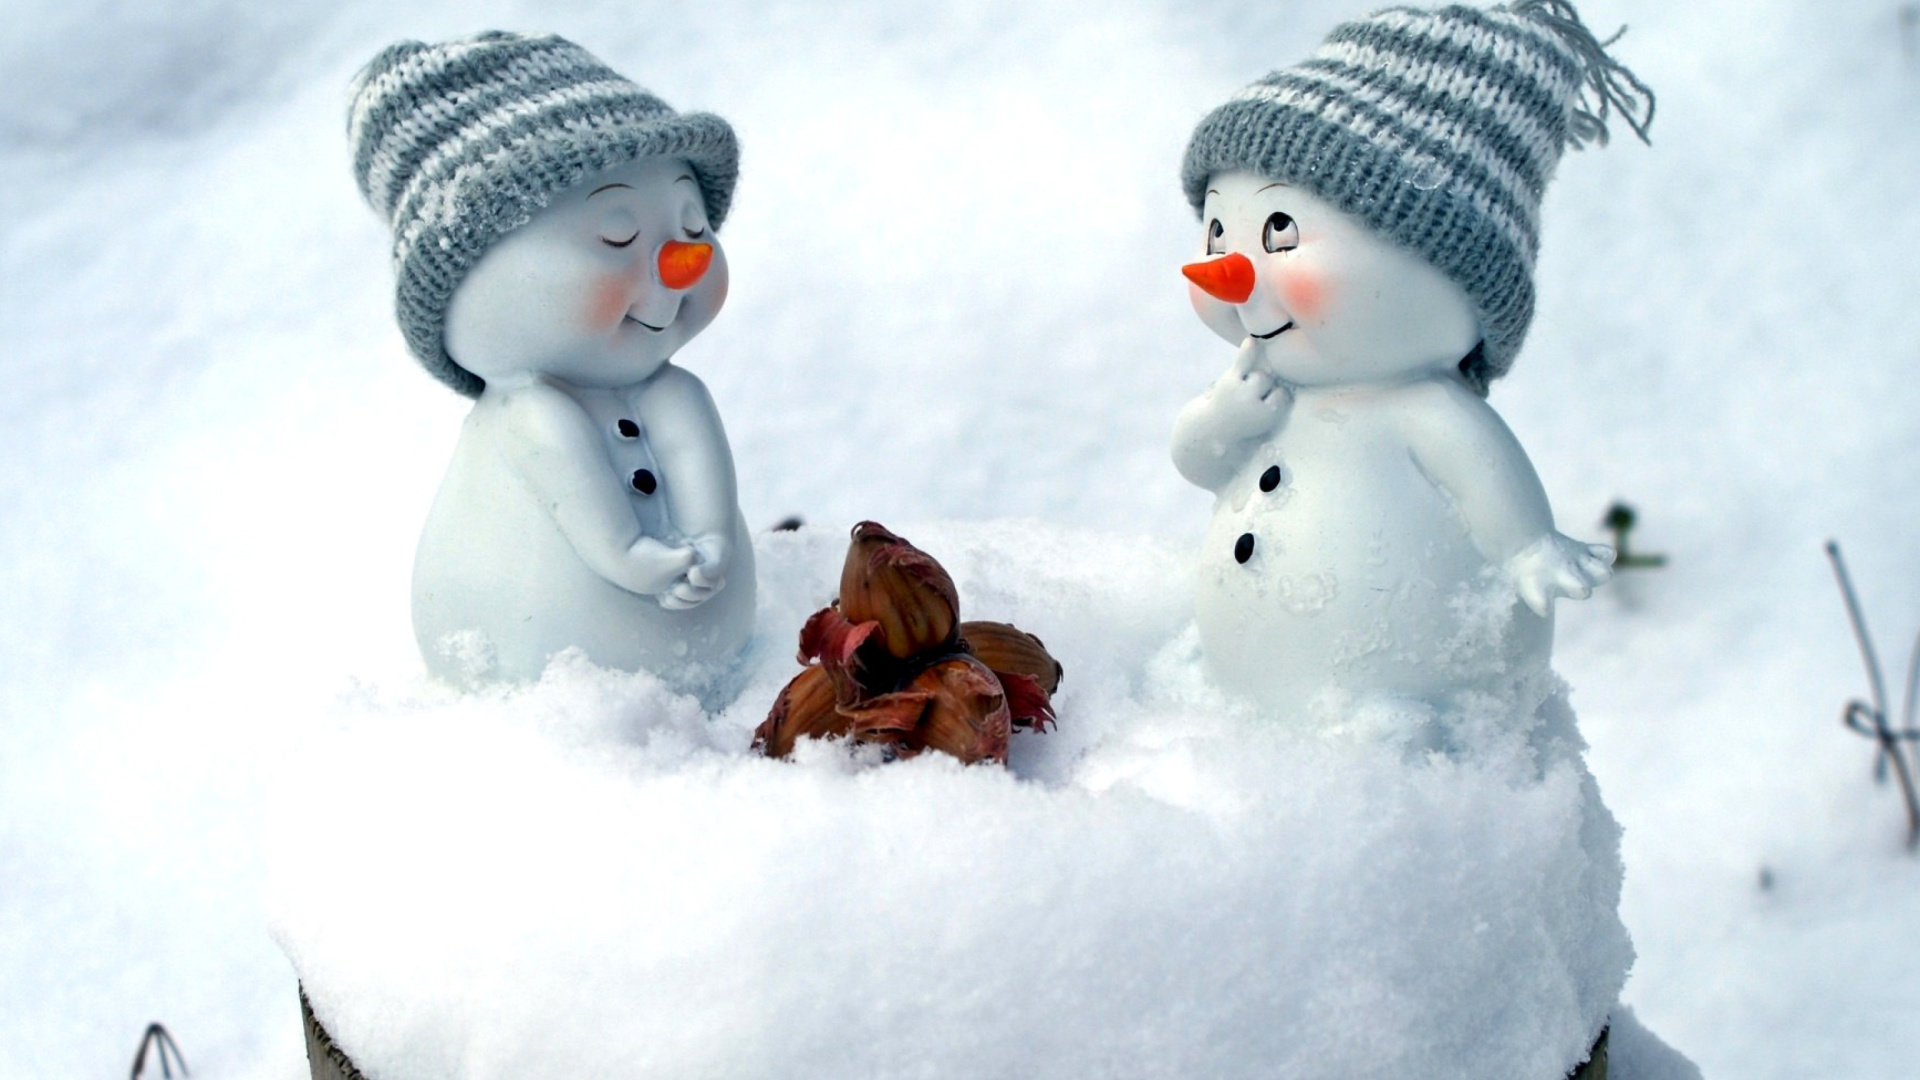 cute snowman christmas decoration figurine wallpaper for